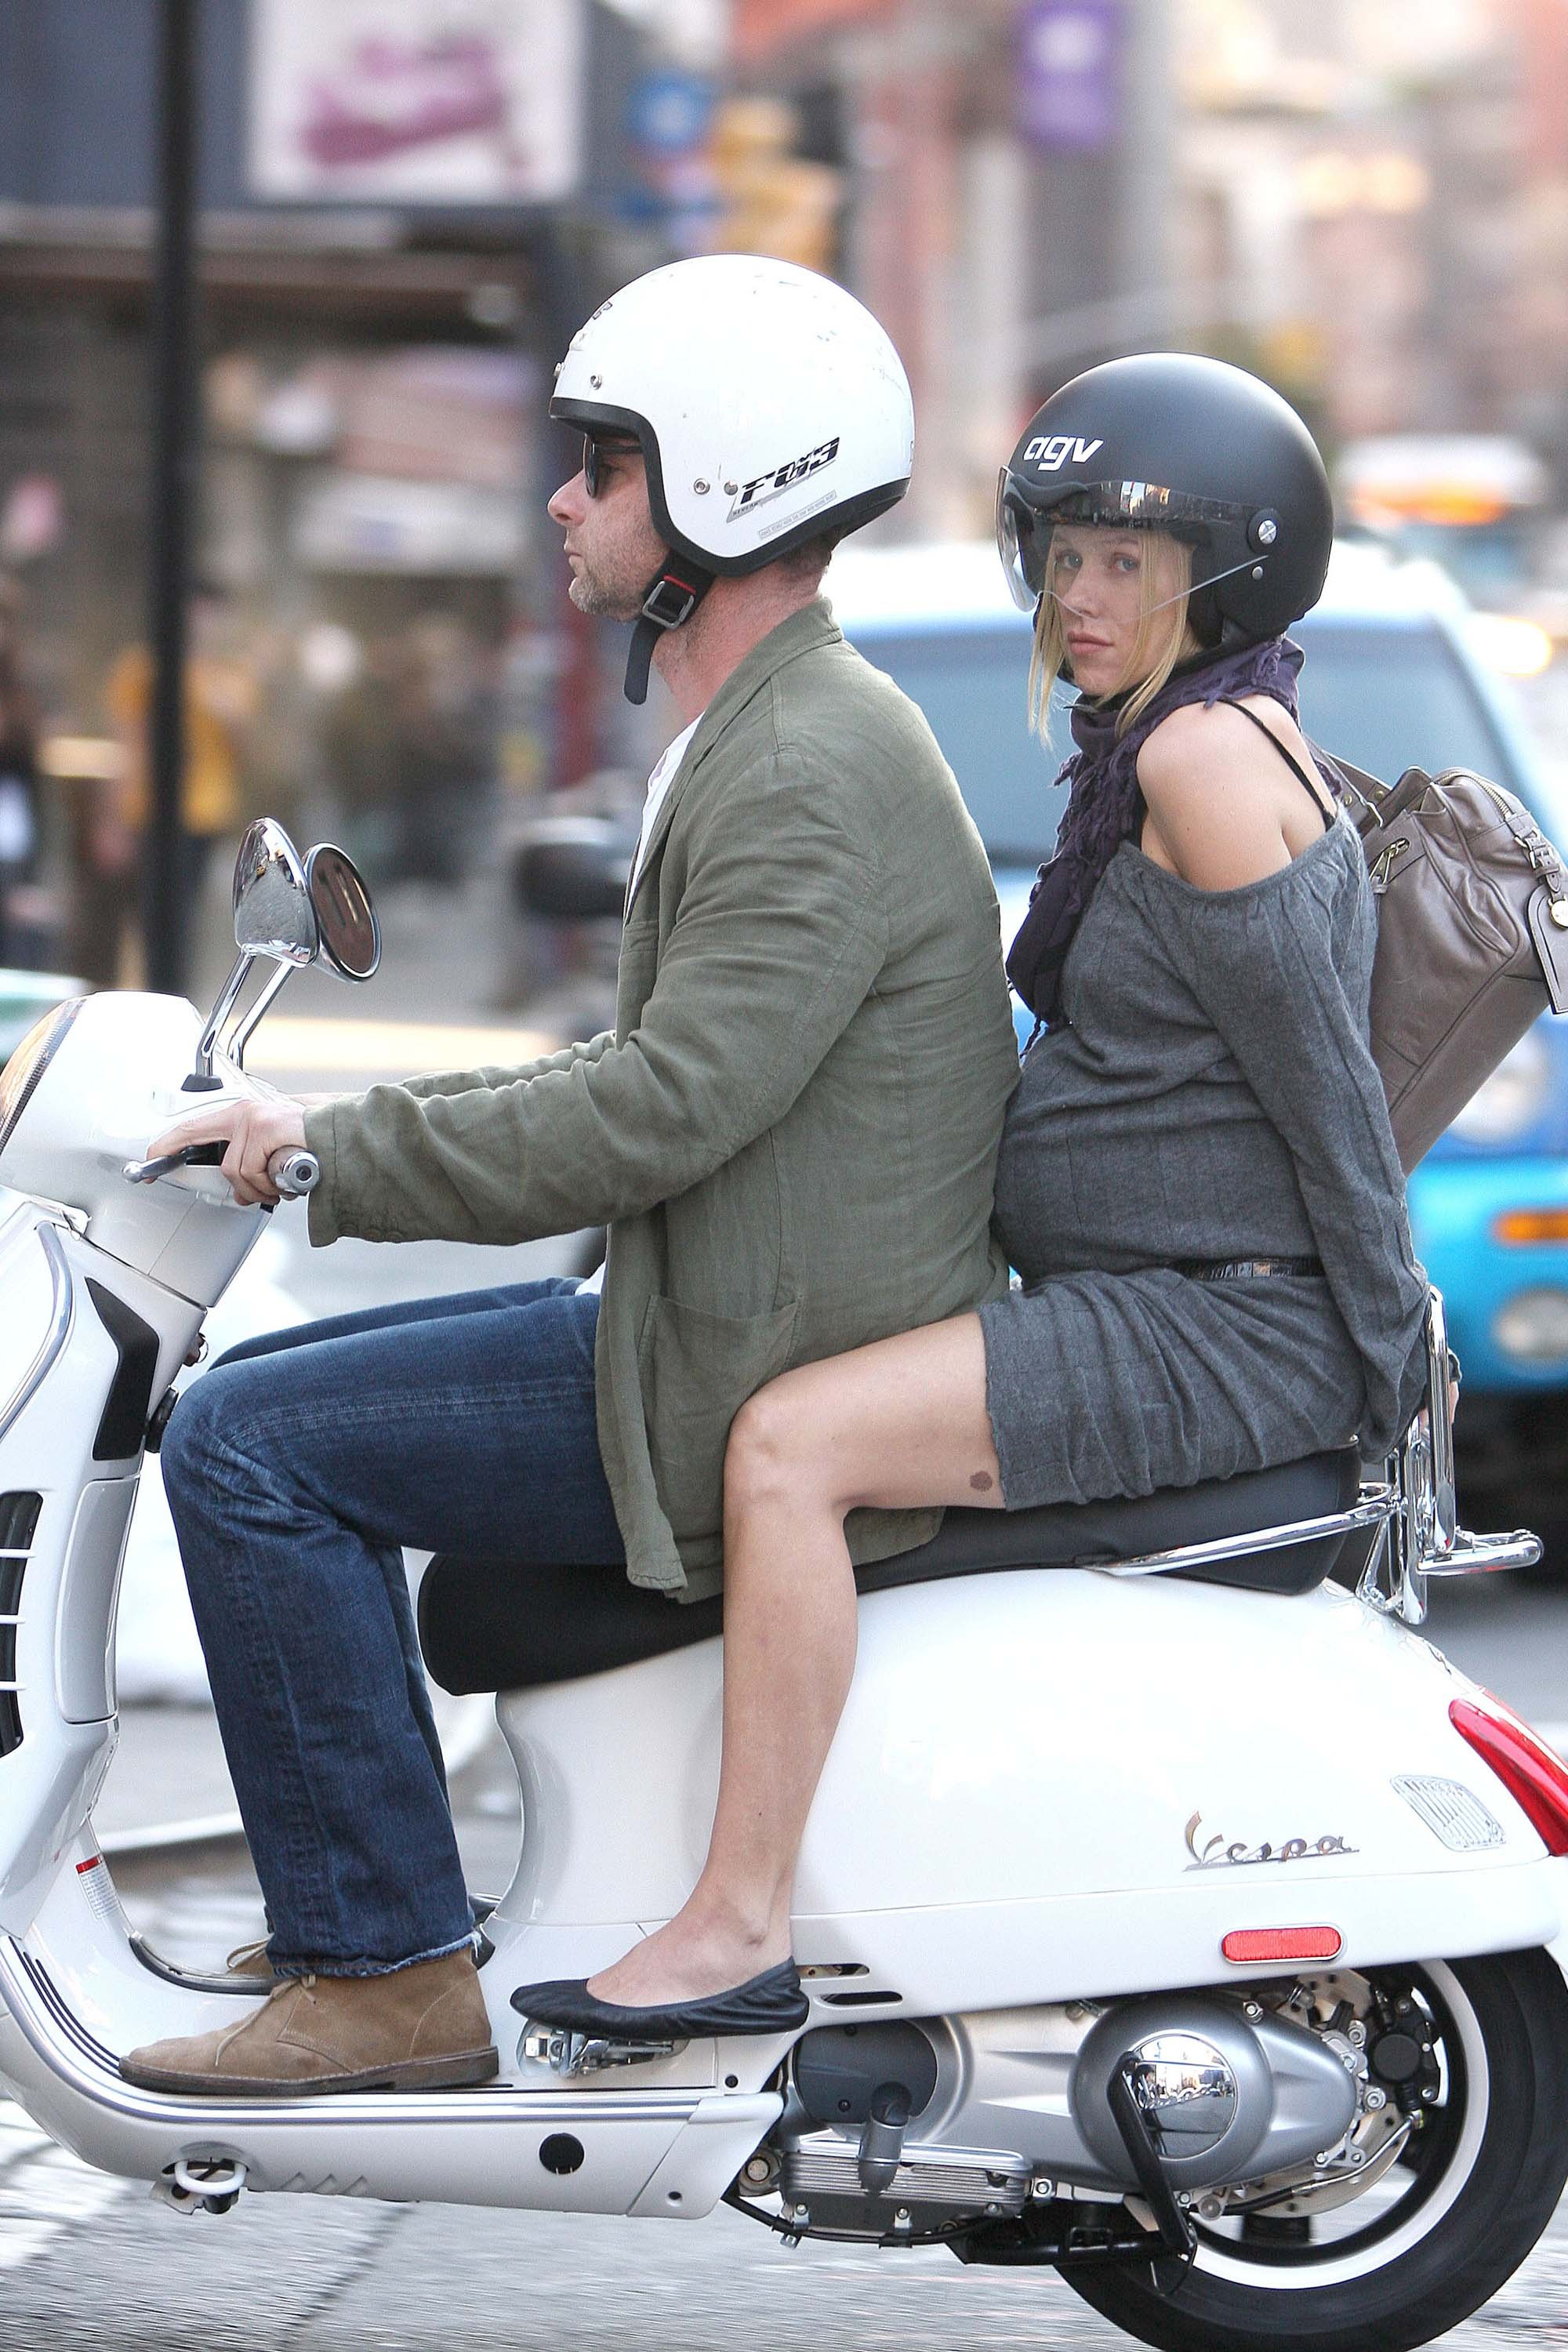 pictured on a Vespa